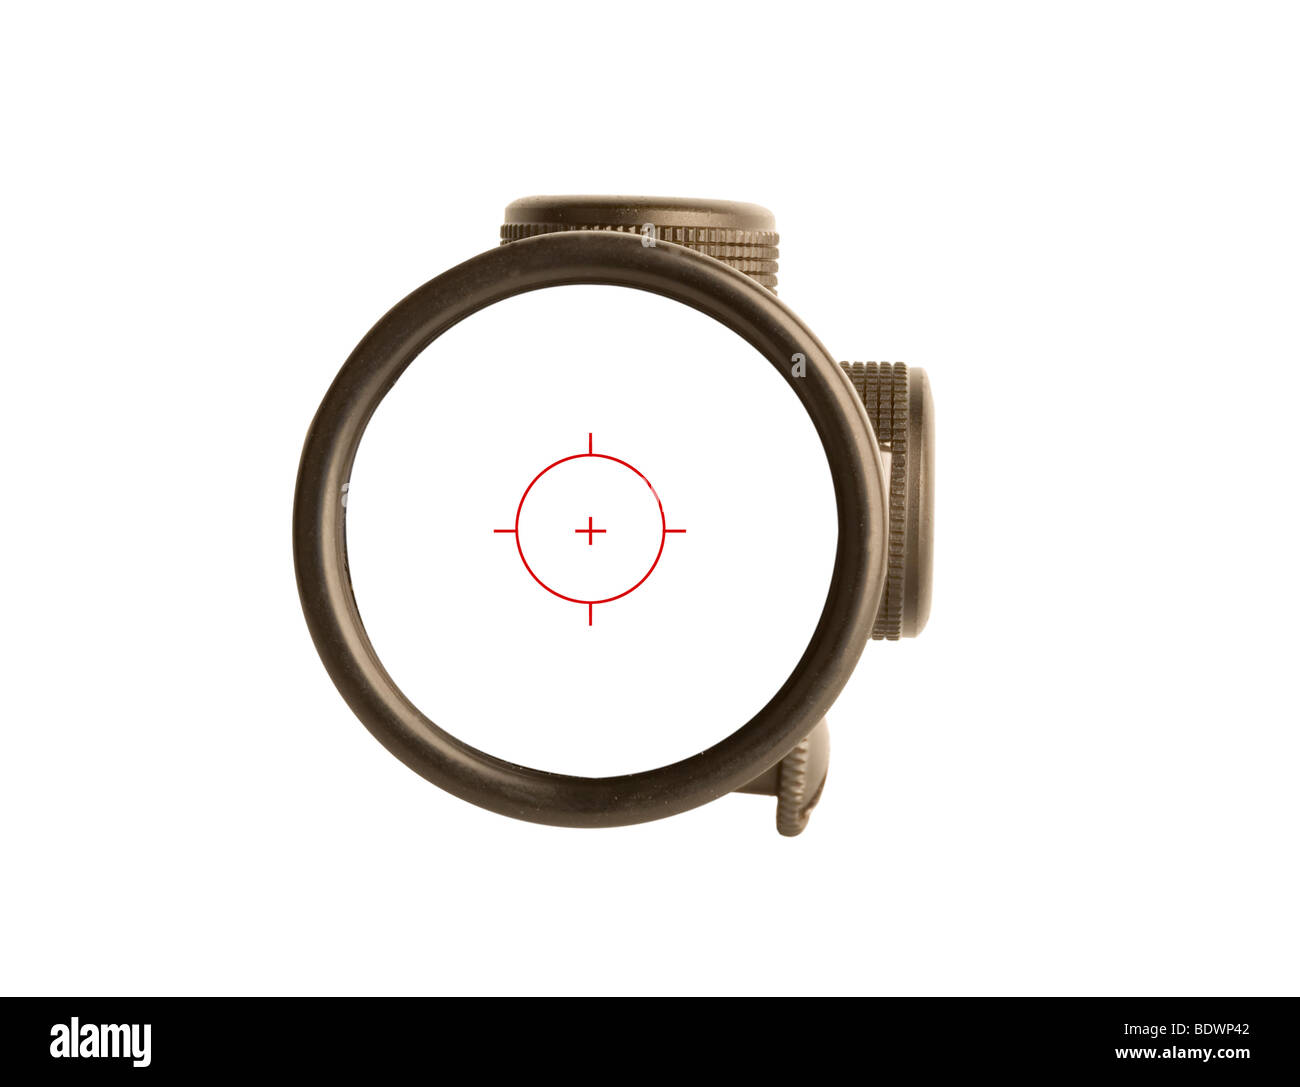 Image of a rifle scope sight used for aiming with a weapon - Stock Image